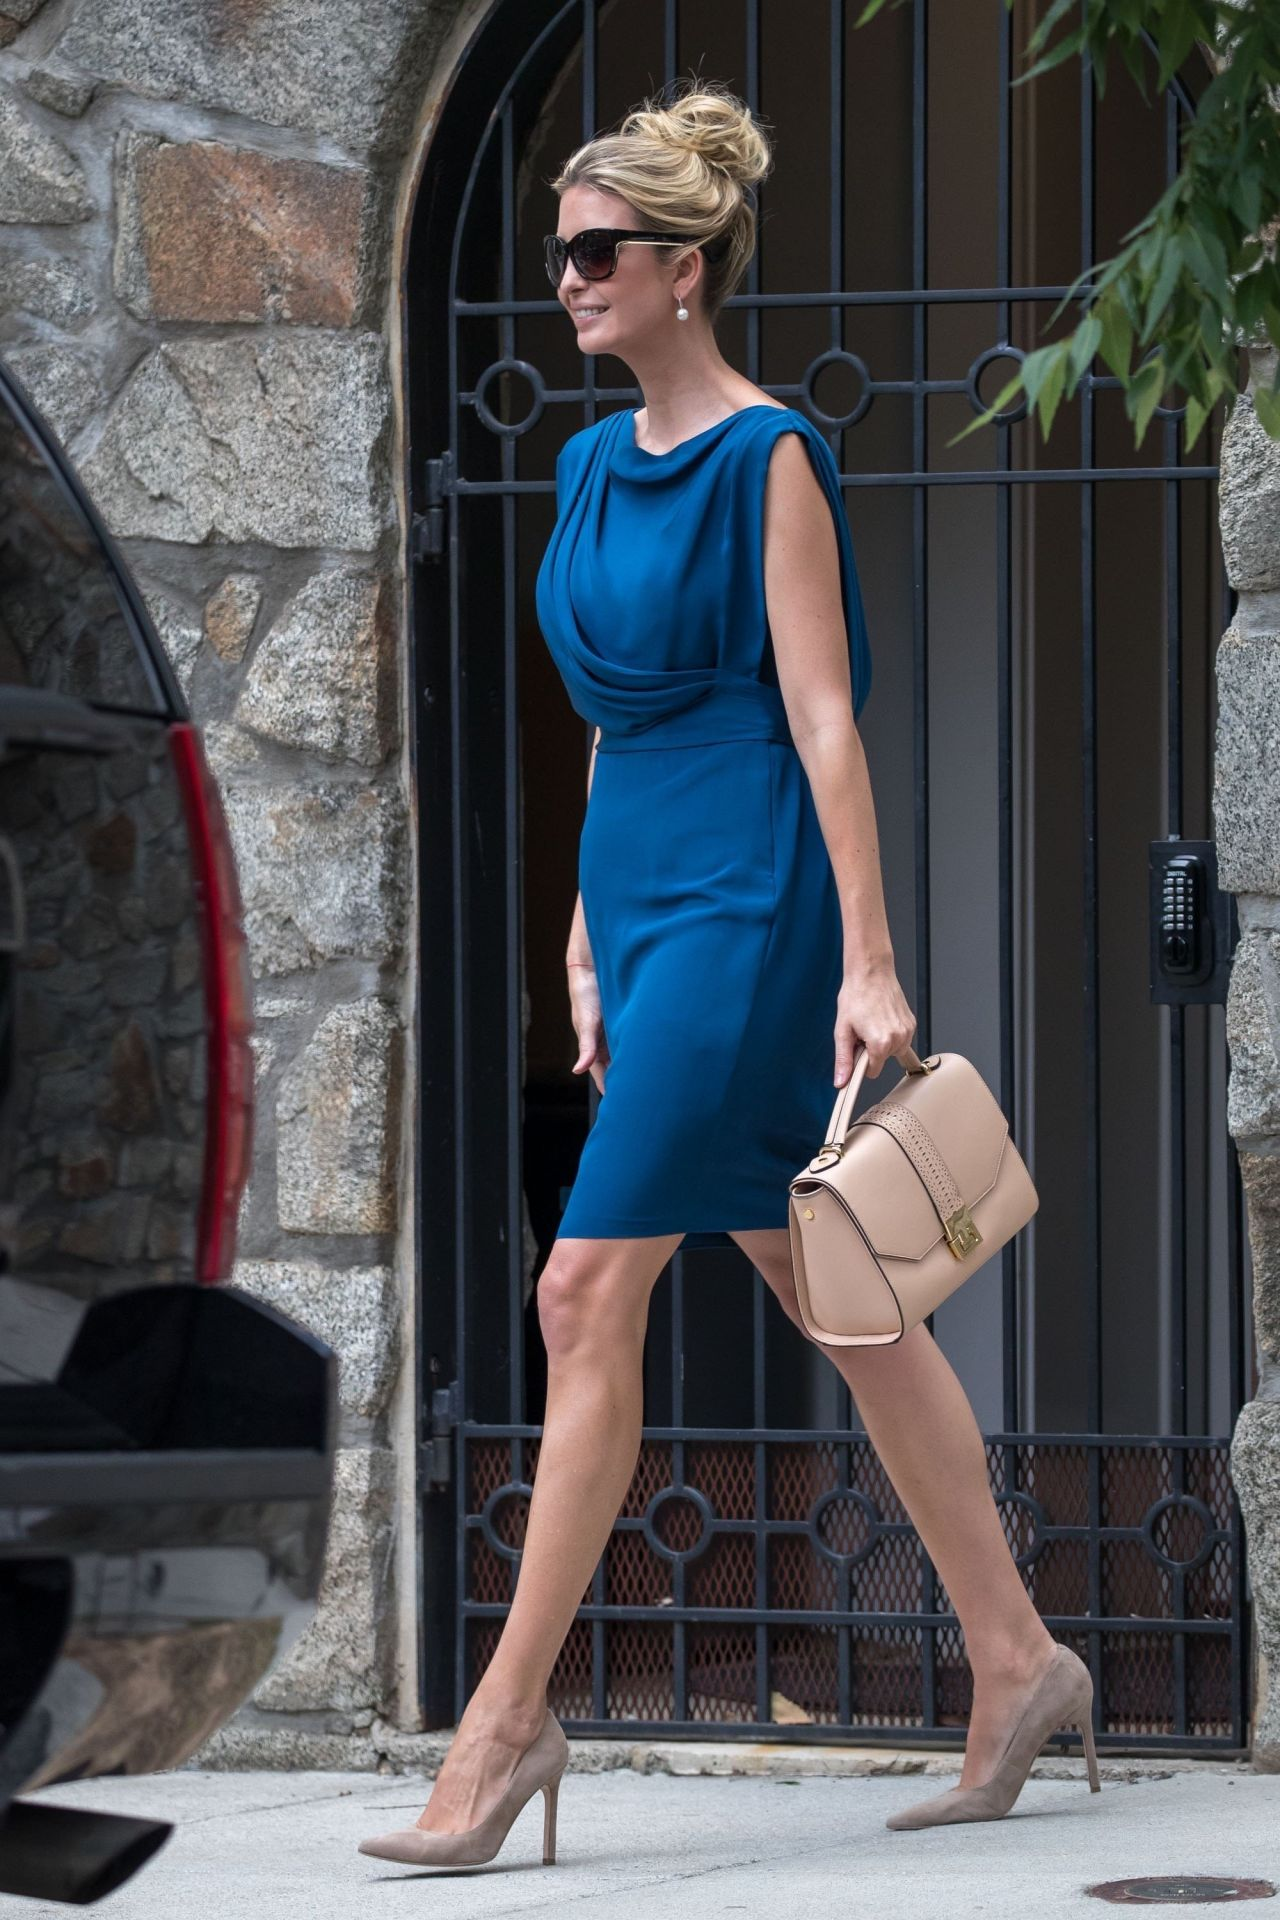 http://celebmafia.com/wp-content/uploads/2017/06/ivanka-trump-leaves-her-house-in-washington-06-19-2017-1.jpg